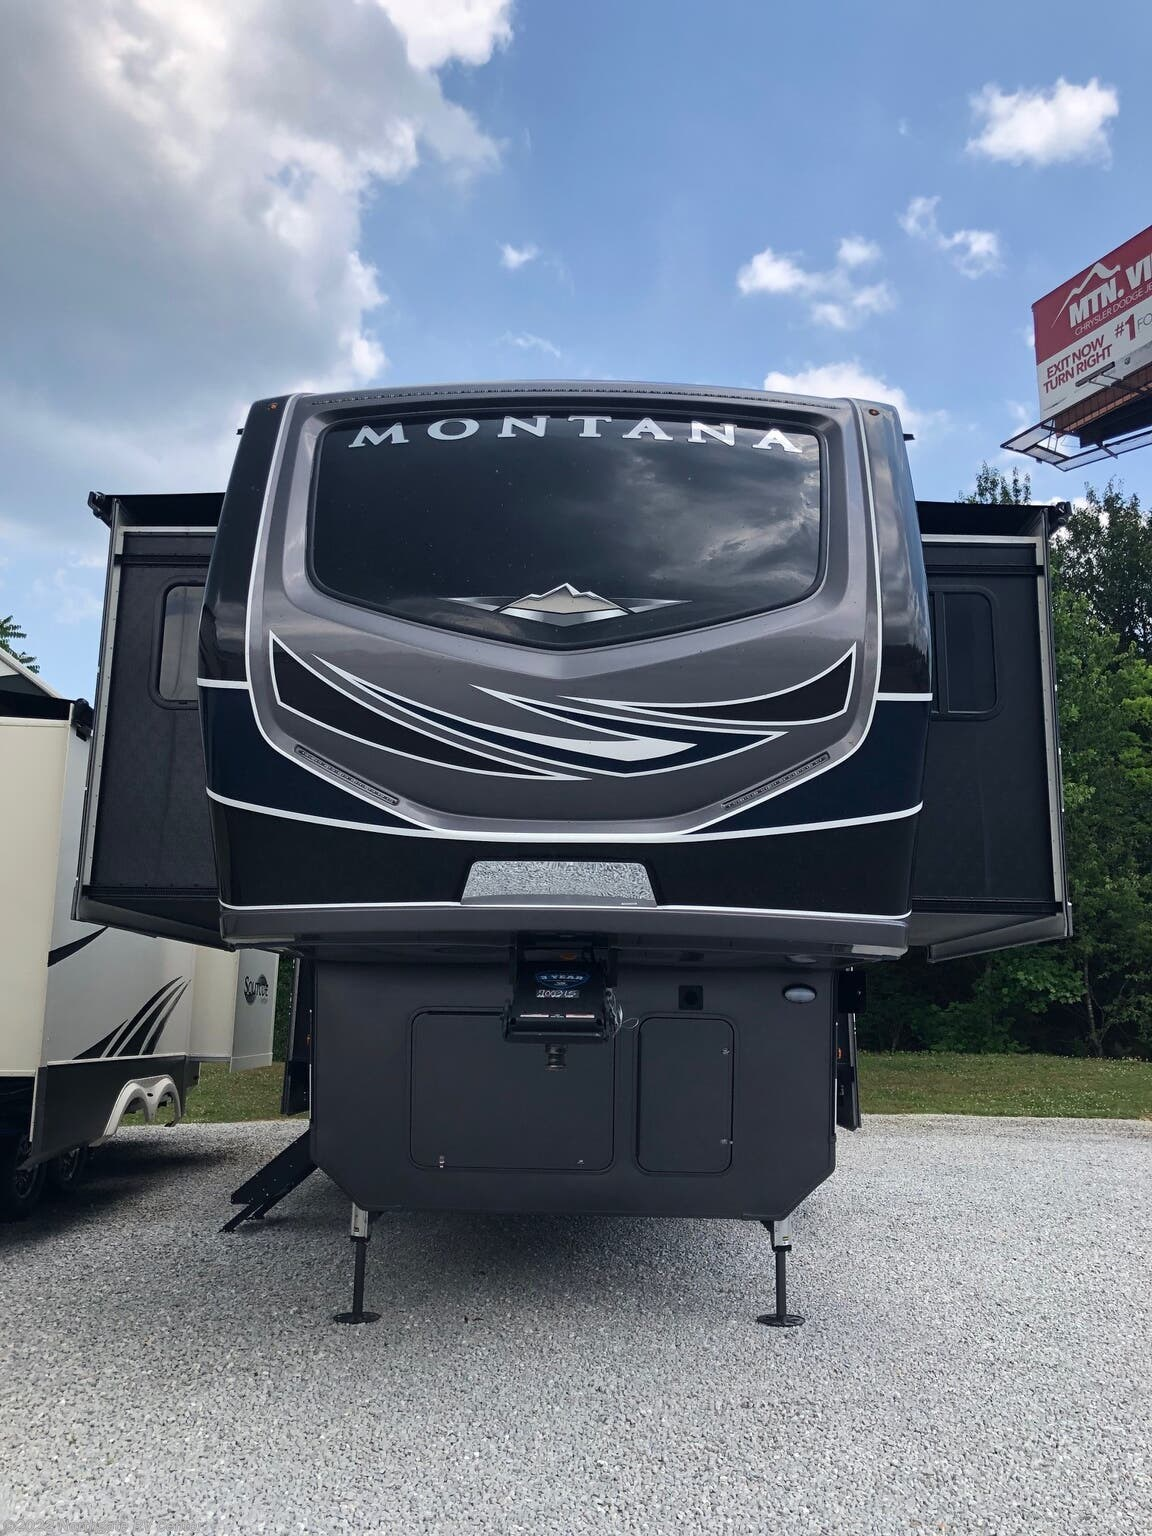 Louisville Rv Show 2020.2020 Keystone Rv Montana 3761fl For Sale In Louisville Tn 37777 L4700315